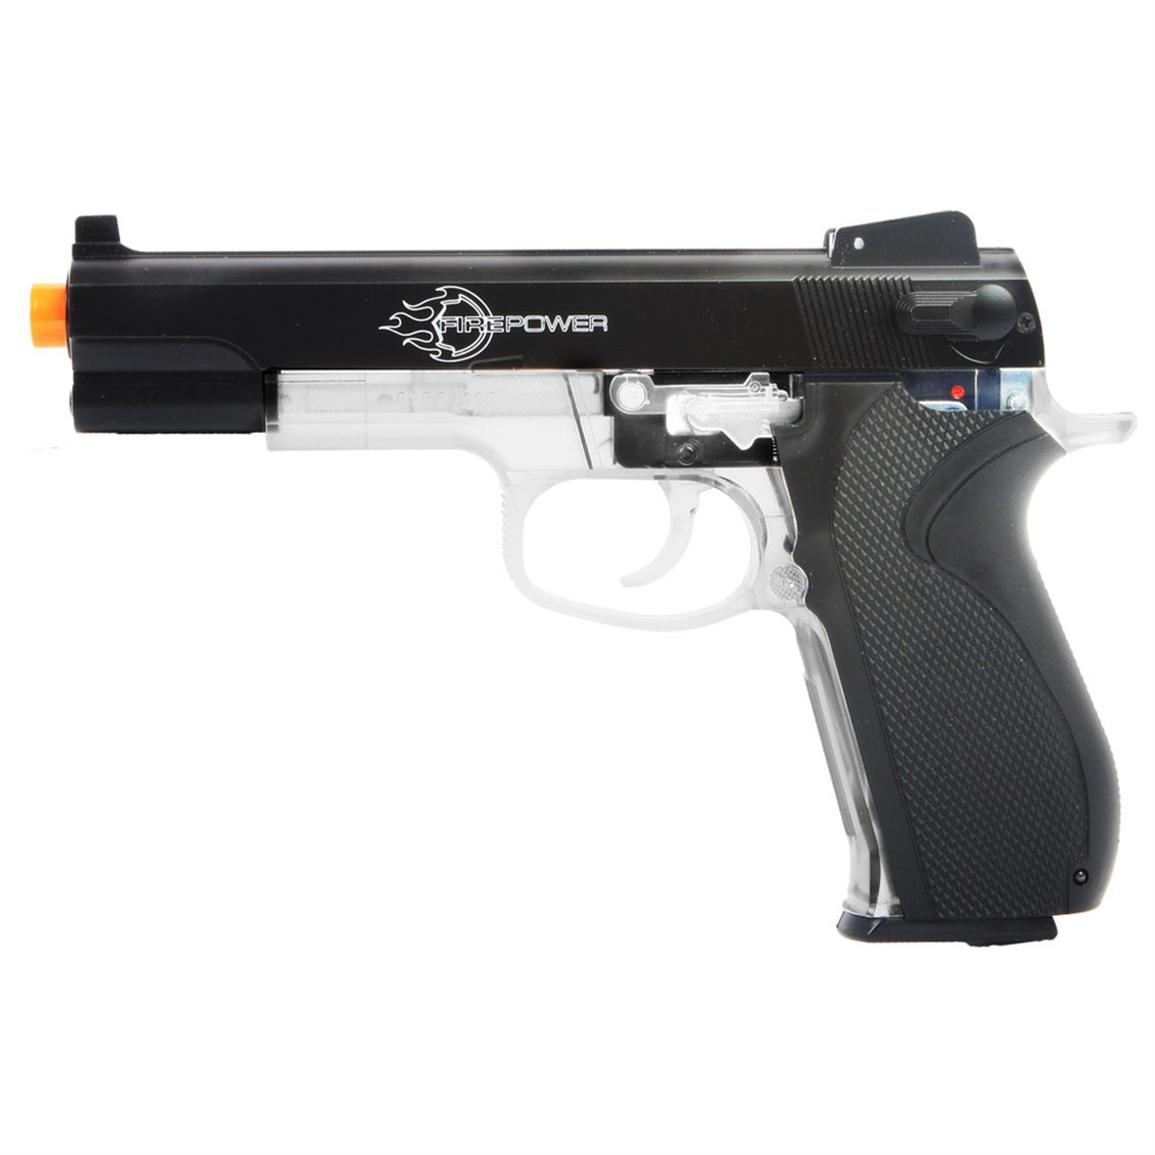 Firepower® .45 Spring-powered Airsoft Pistol from Palco®